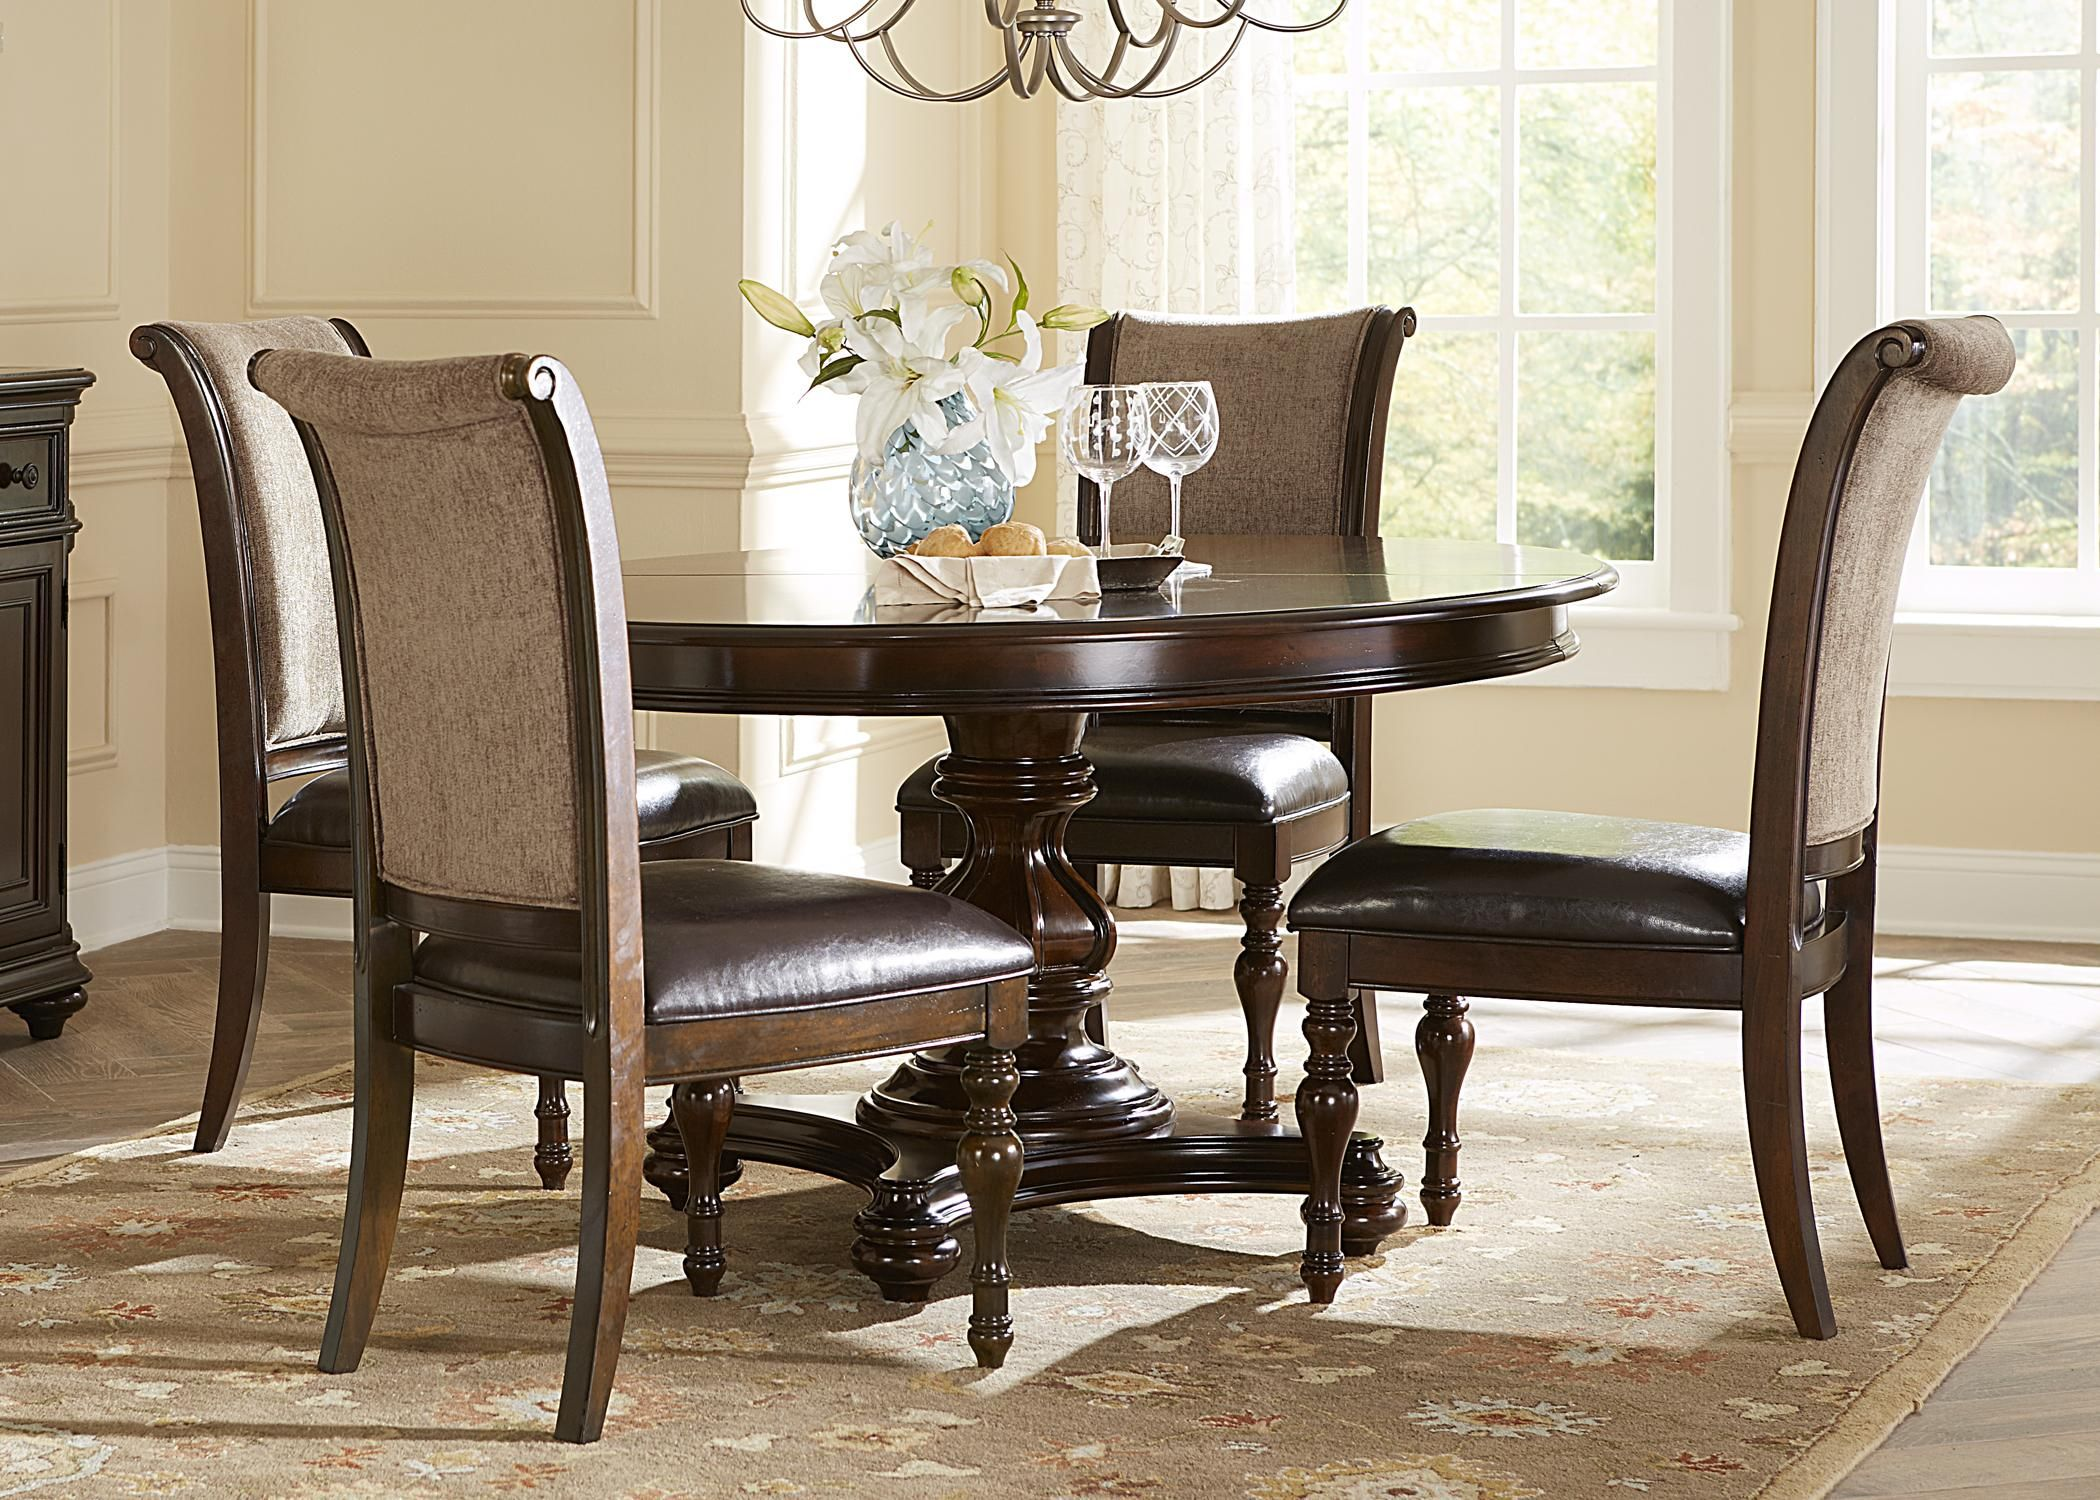 Five piece dining room